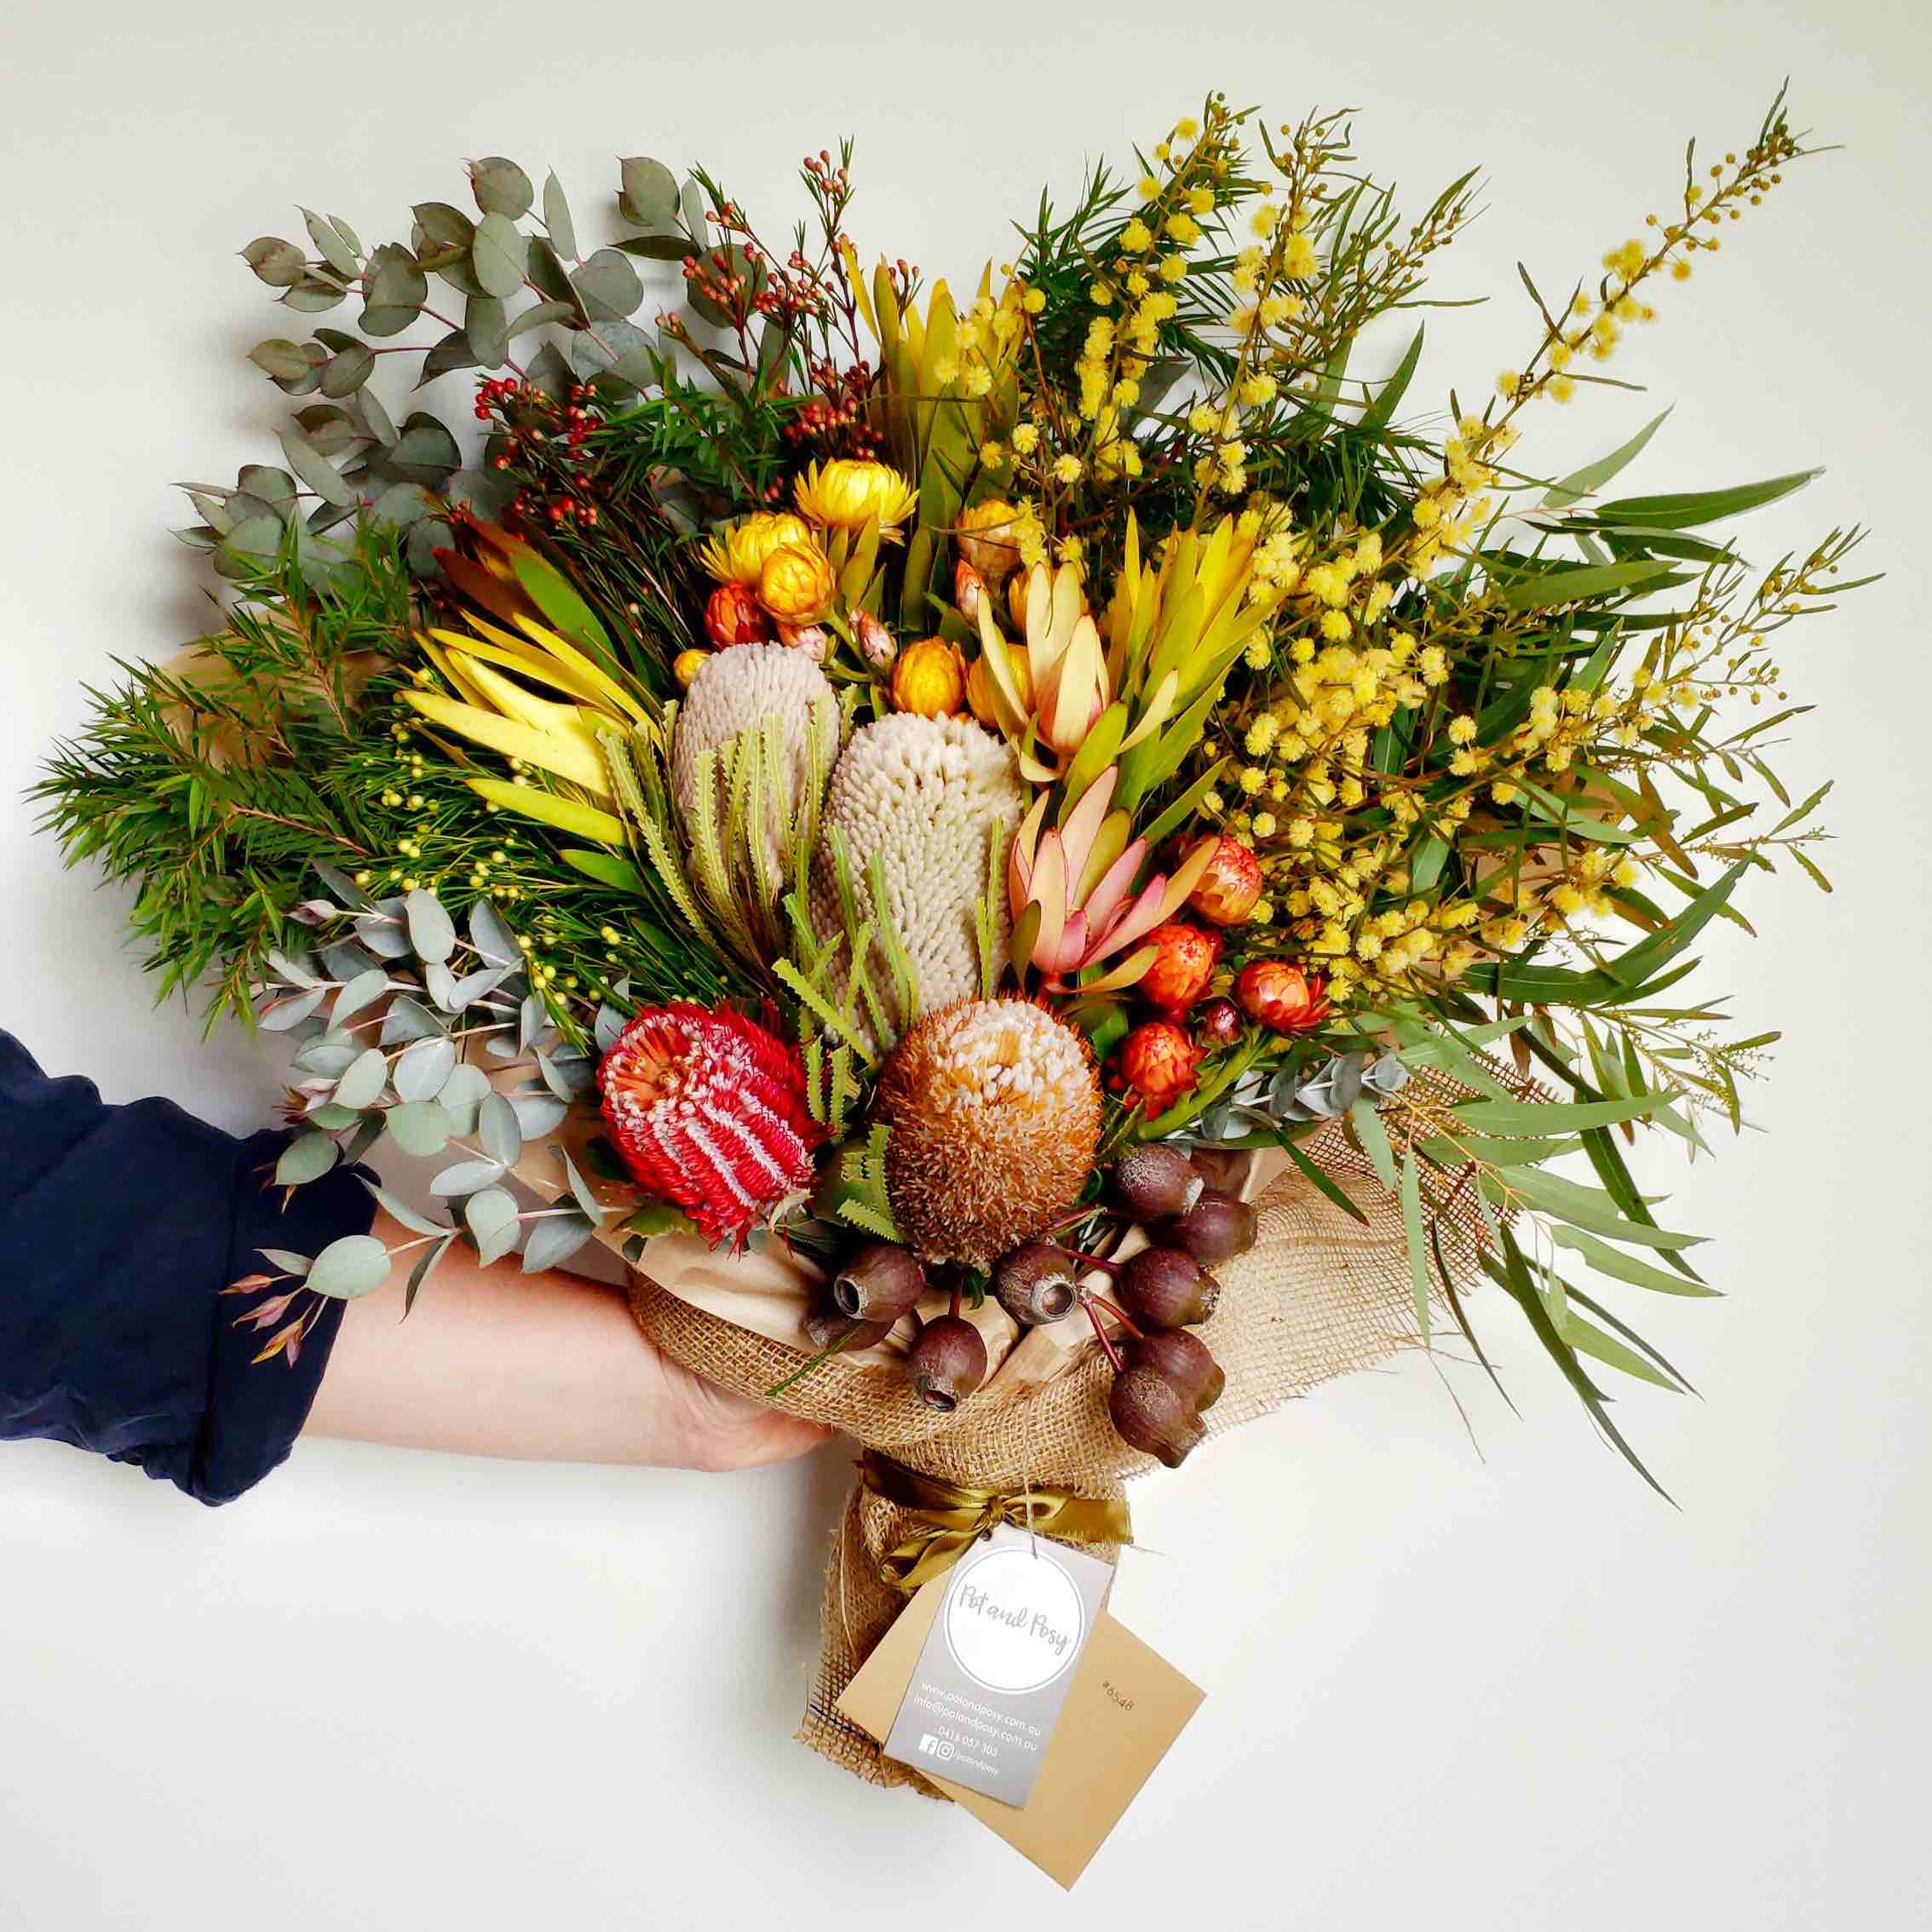 SAME DAY FLOWER DELIVERY • PRE-ORDER • POSY SUBSCRIPTIONS